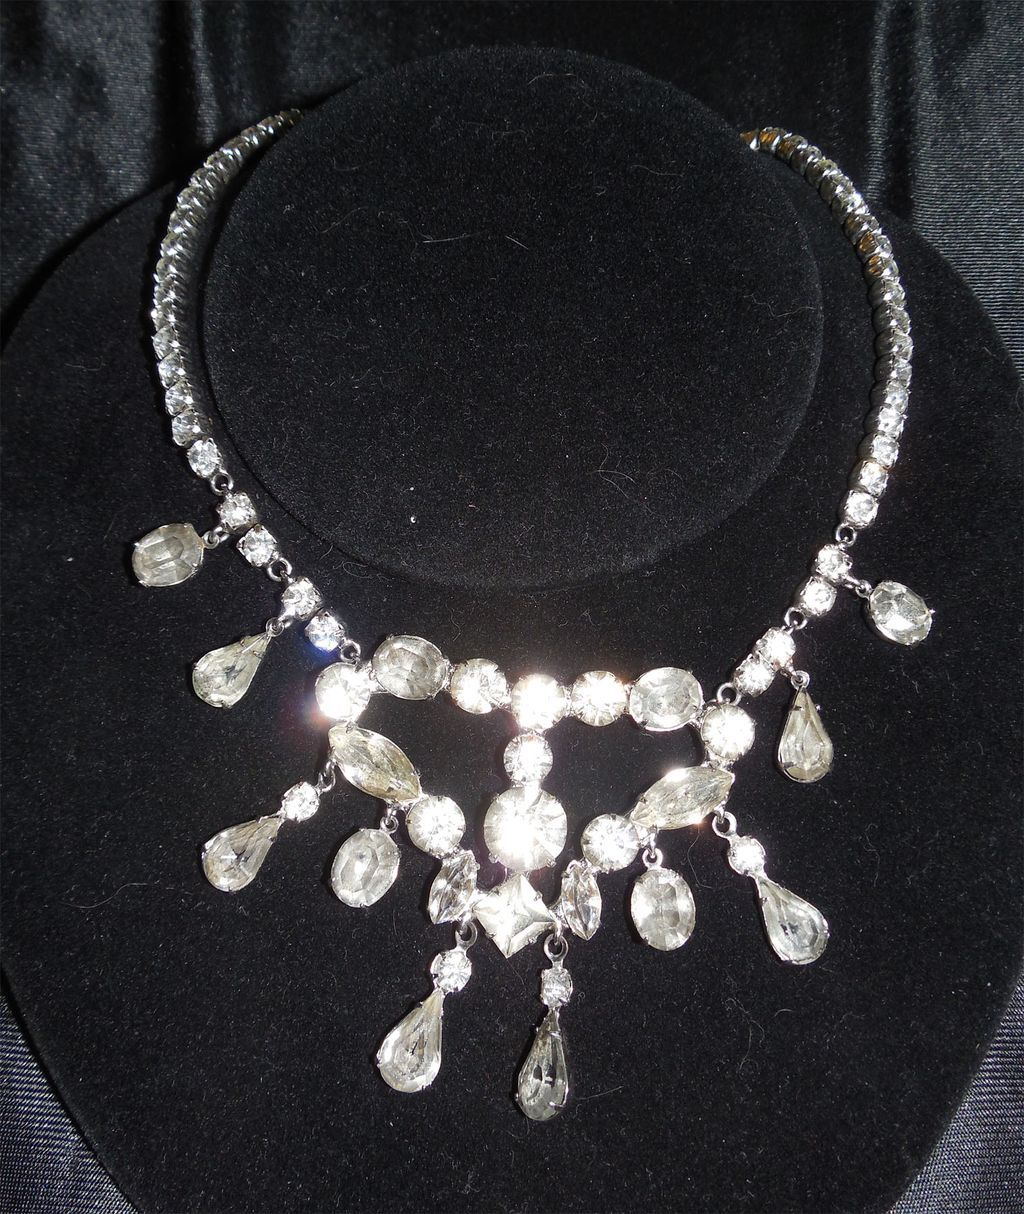 Dramatic Vintage Rhinestone Bib Necklace